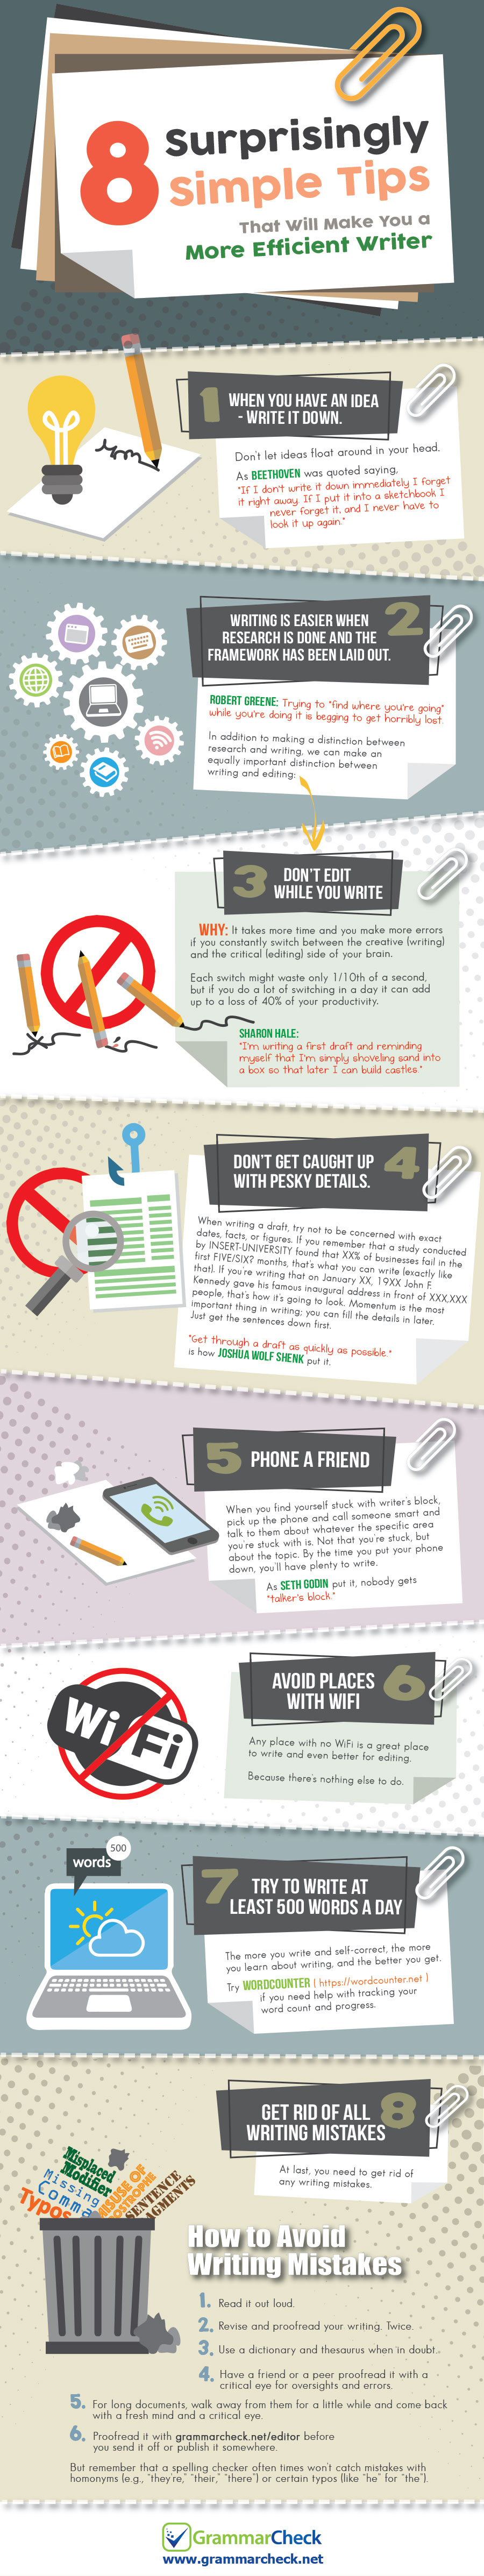 Infographic outlines tips to improve your writing output